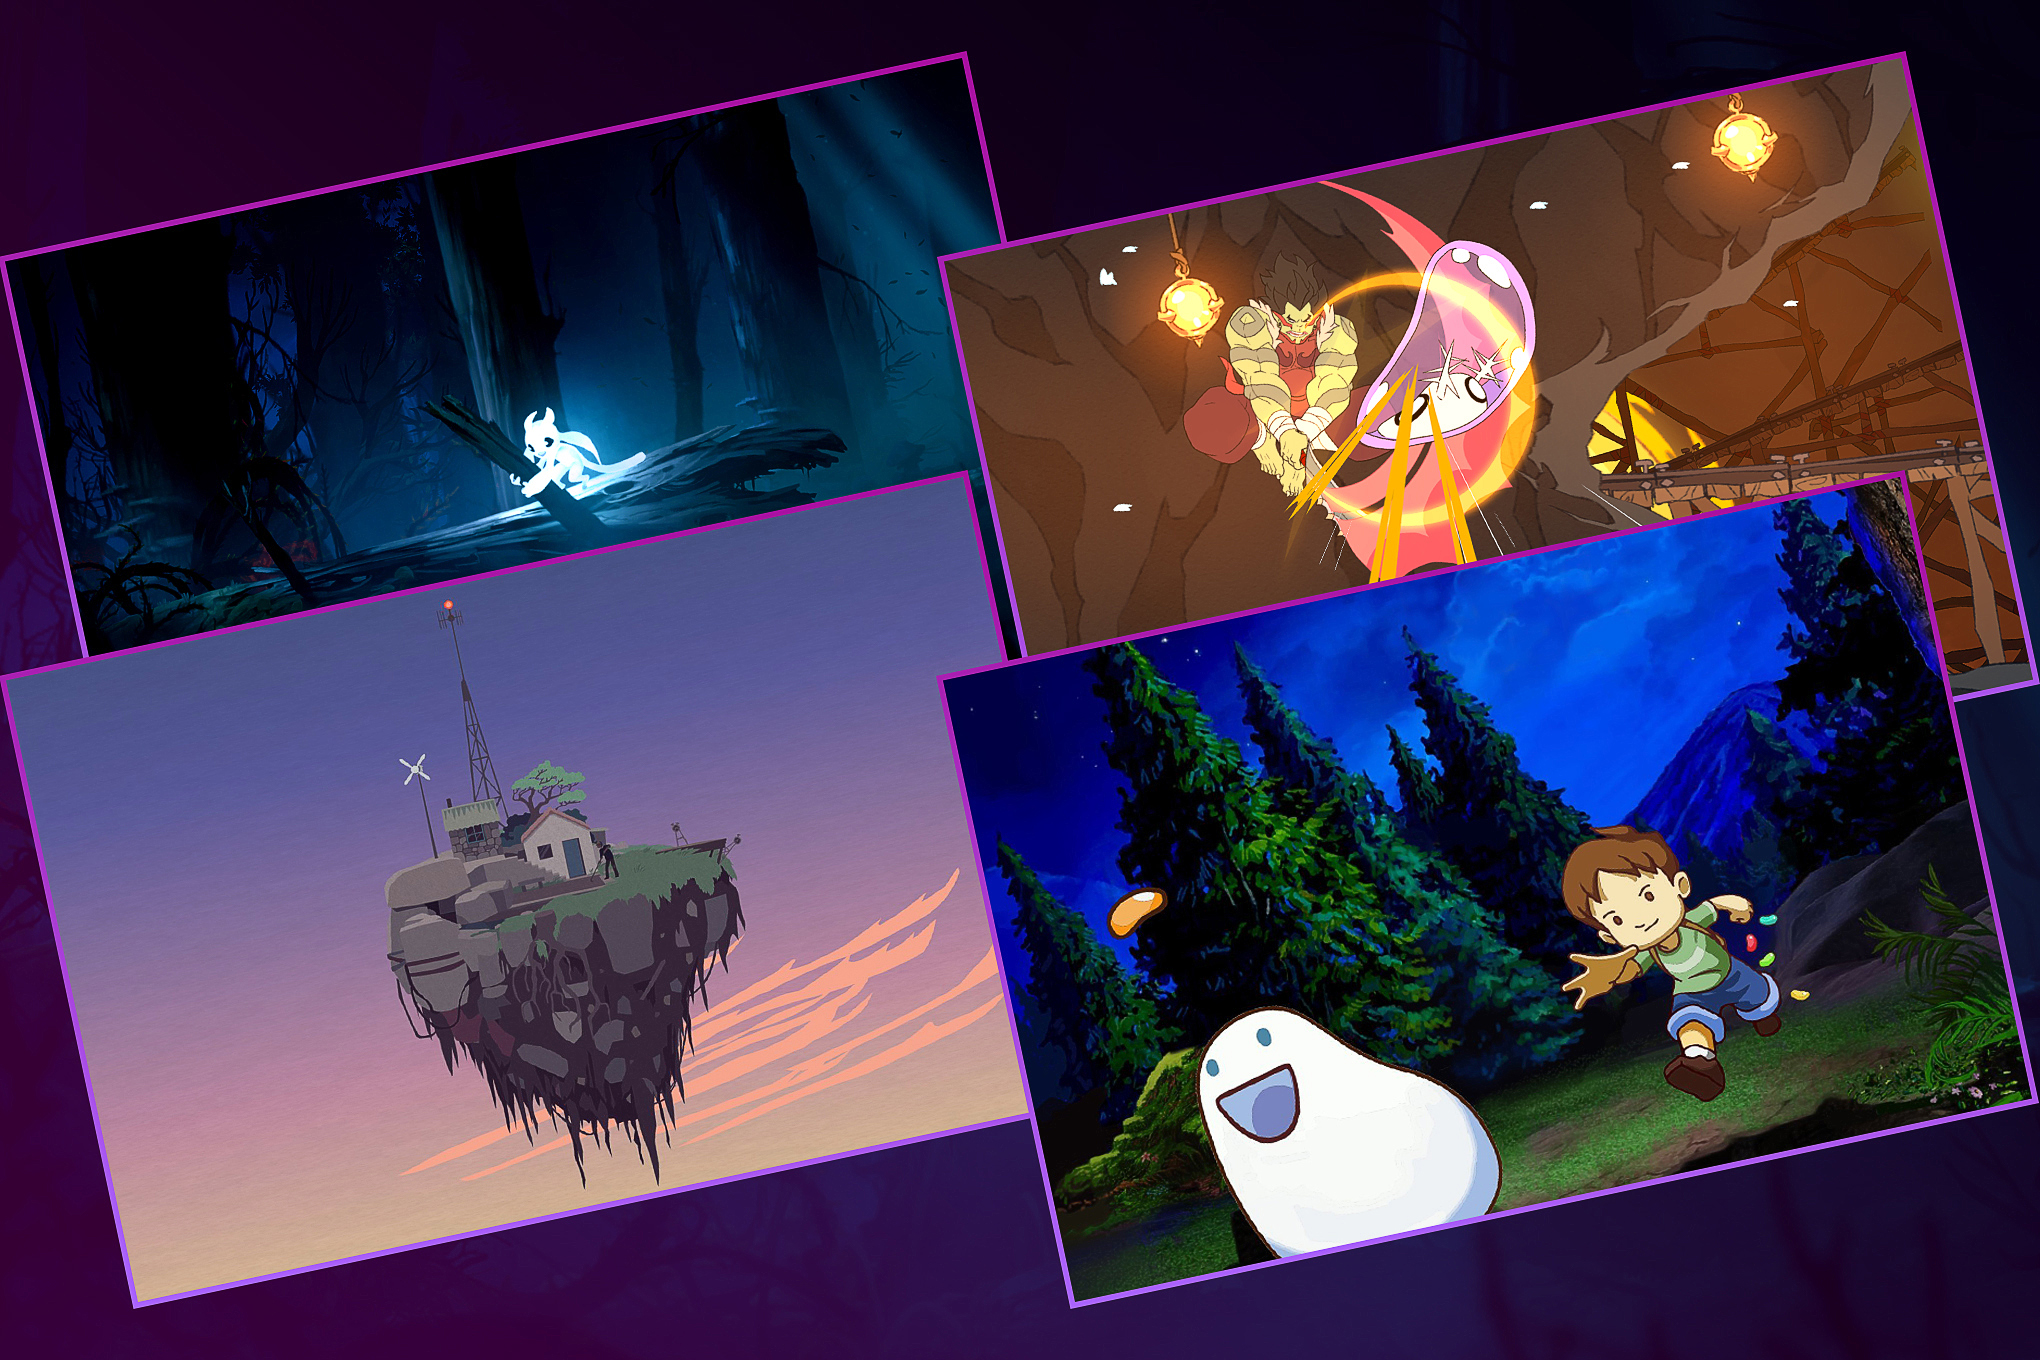 A collection of images Ori and the Blind Forest, Battle Chef Brigade, Mutazione, and A Boy And His Blob (counter-clockwise).